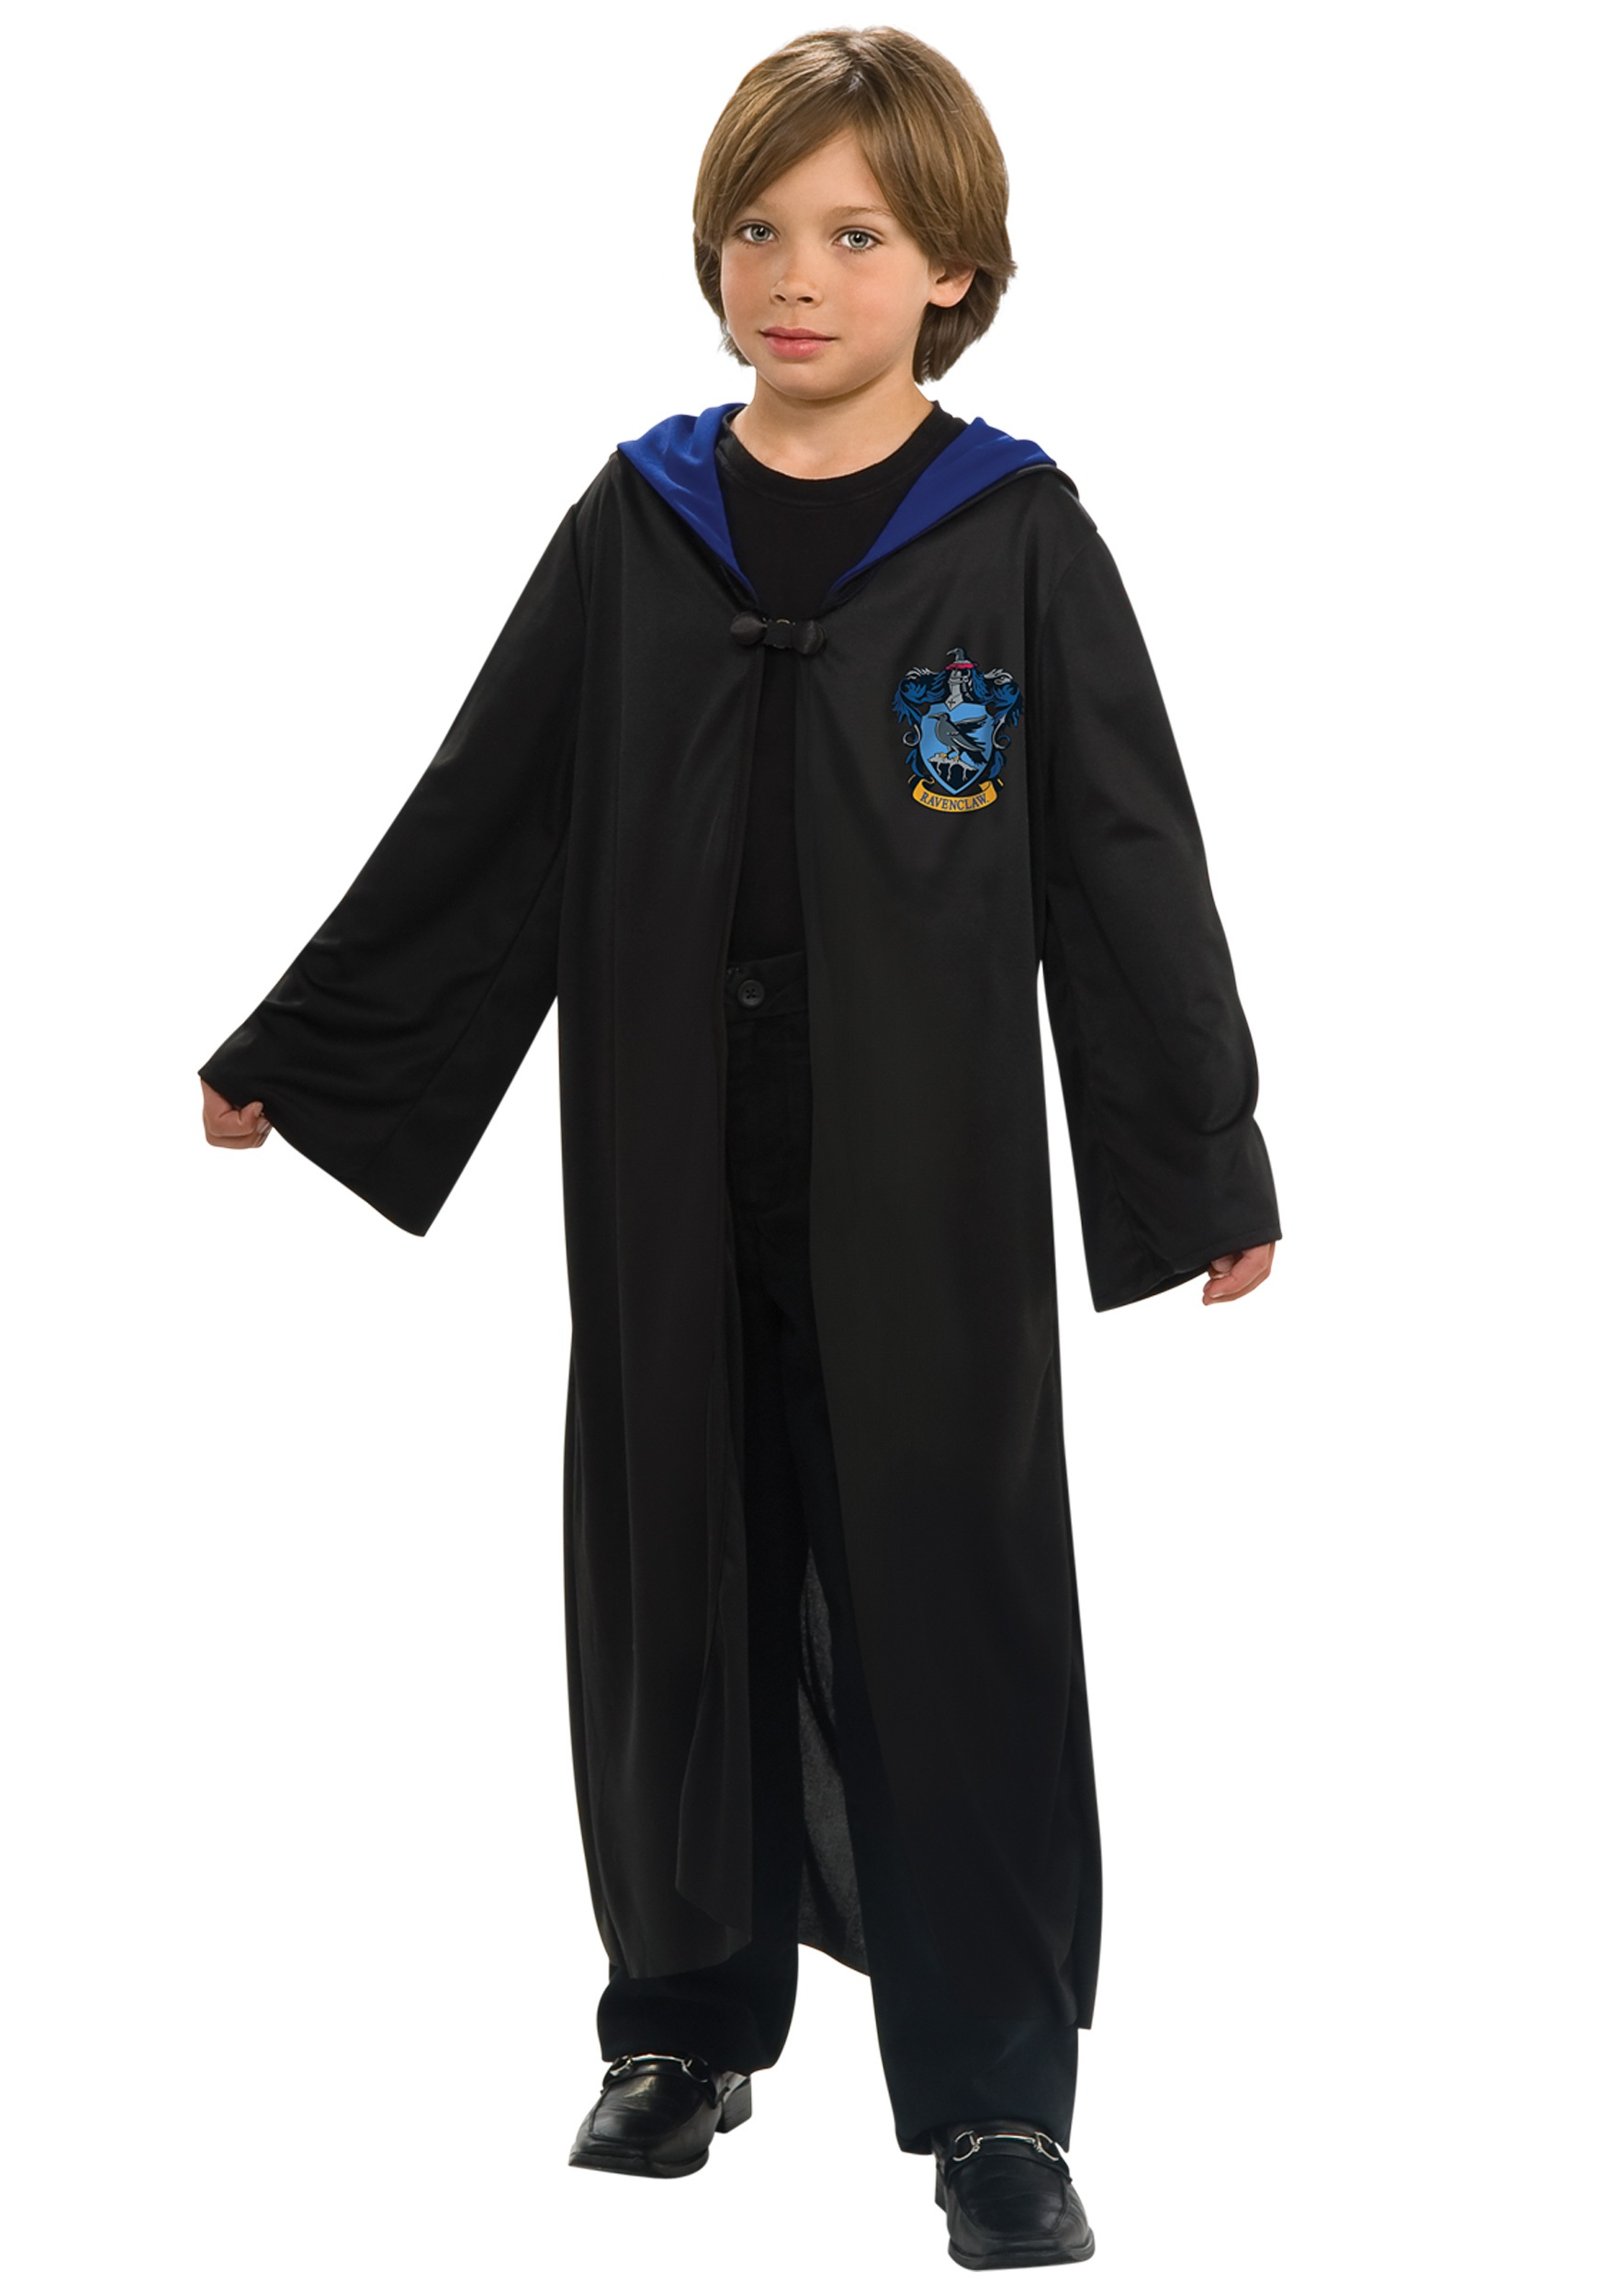 Harry Potter Costumes & Accessories - HalloweenCostumes.com